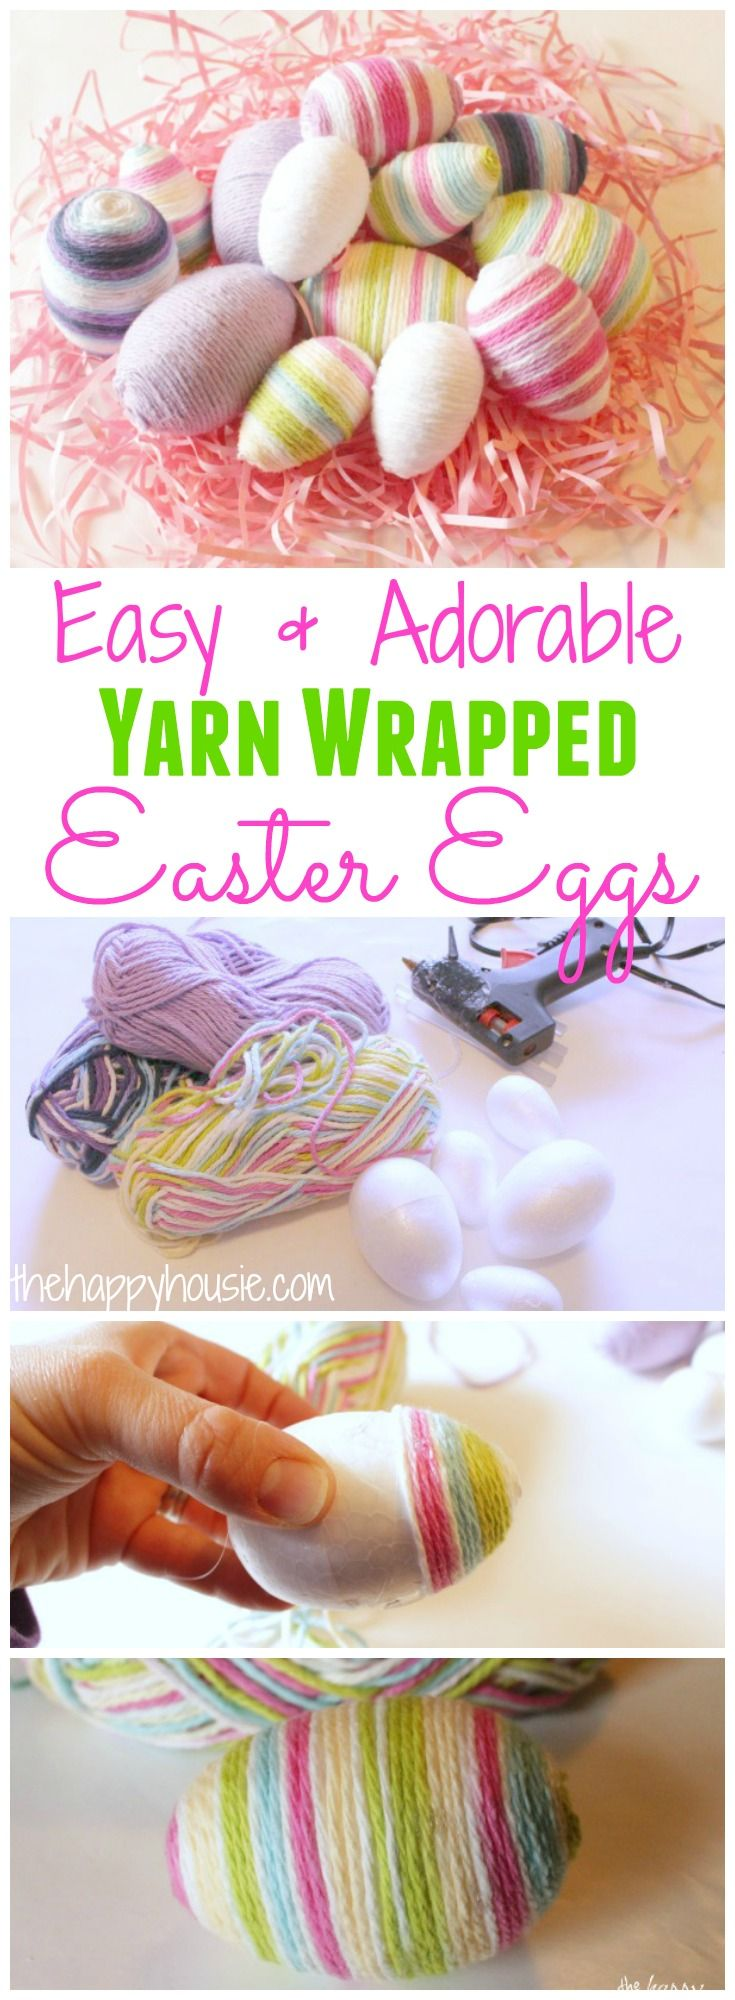 How to make your own Easy and Adorable Yarn Wrapped Easter Eggs at thehappyhousie.com